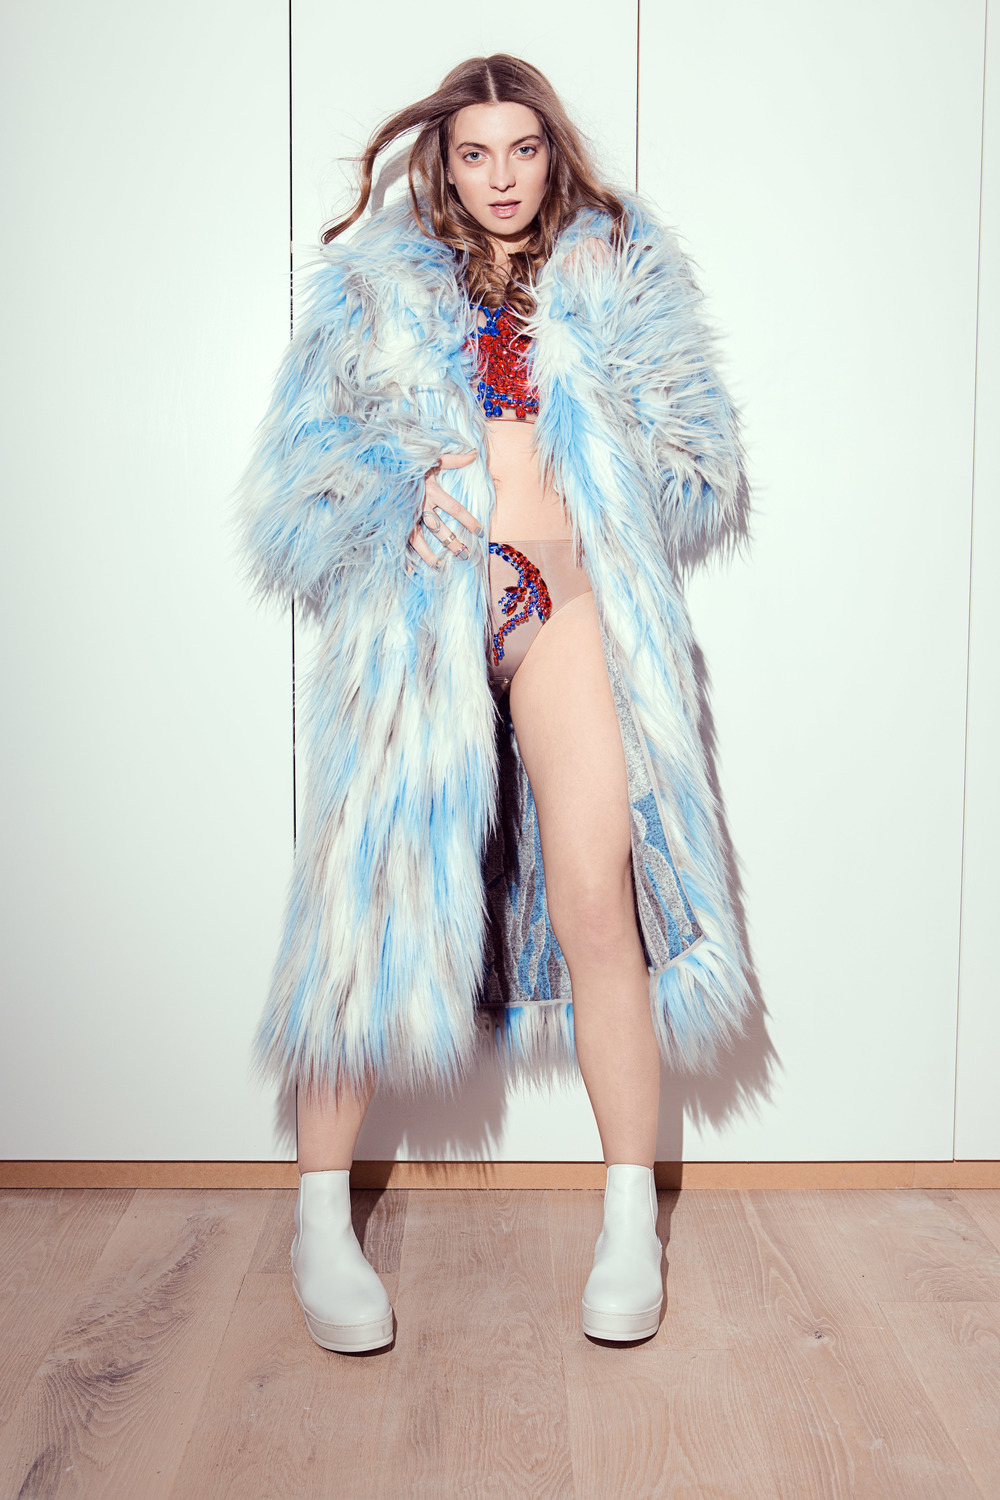 SCV heart top & knickers:  Olga Noronha Jewellery ; Faux fur coat:  Alexandra Moura ; Boots:  Ante London